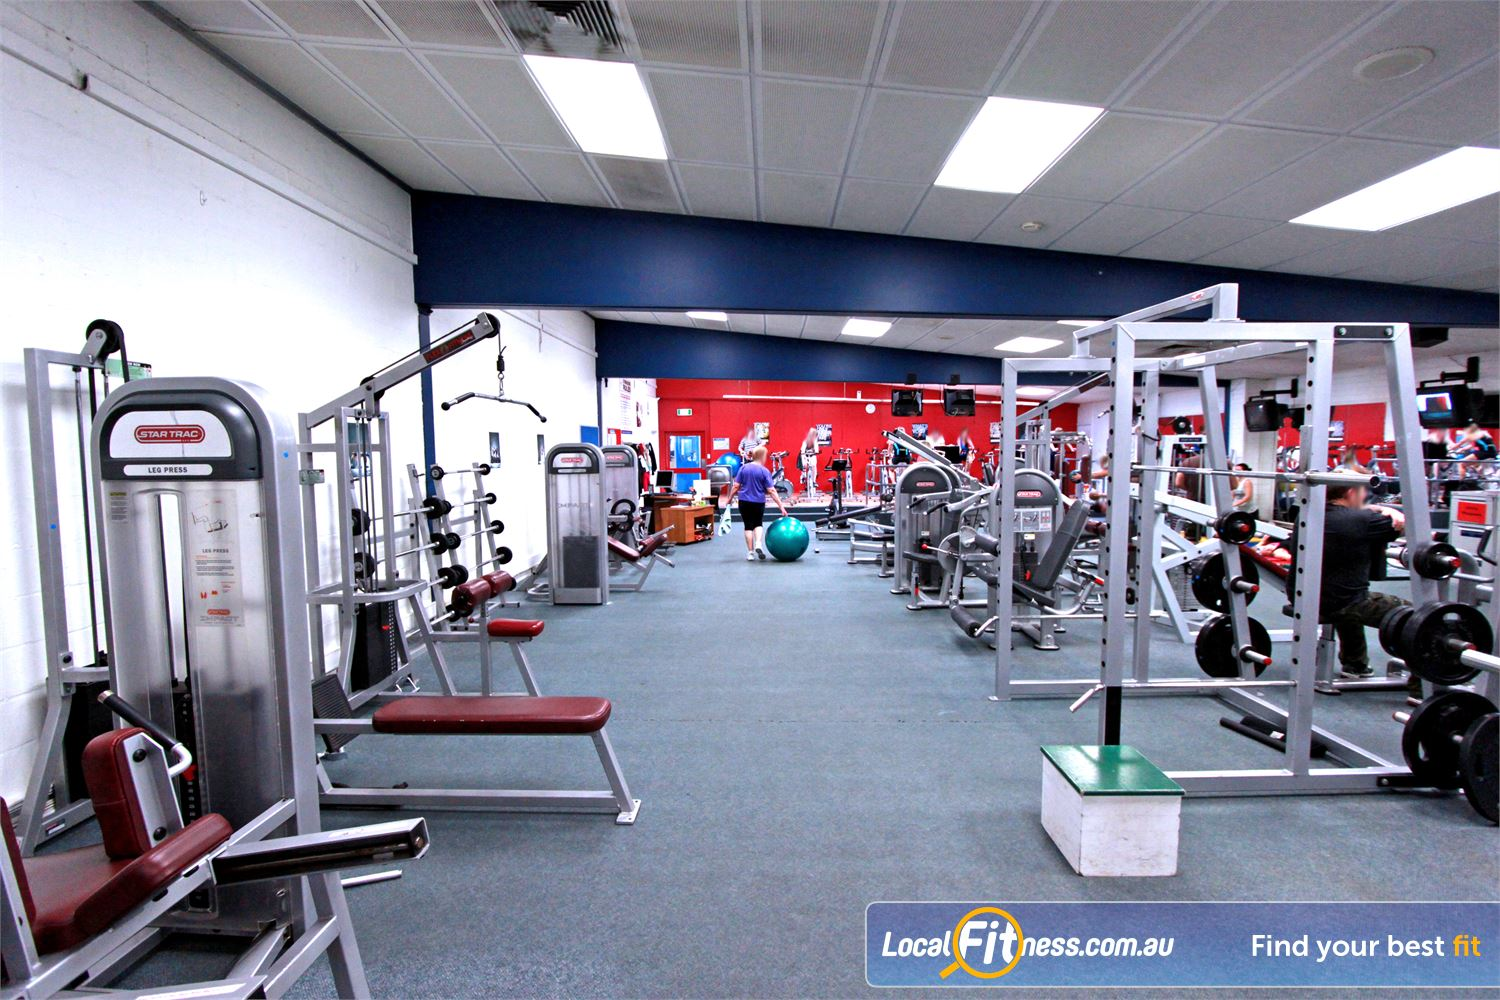 East Keilor Leisure Centre Near Niddrie East Keilor gym offers a relaxed and non-threatening environment.